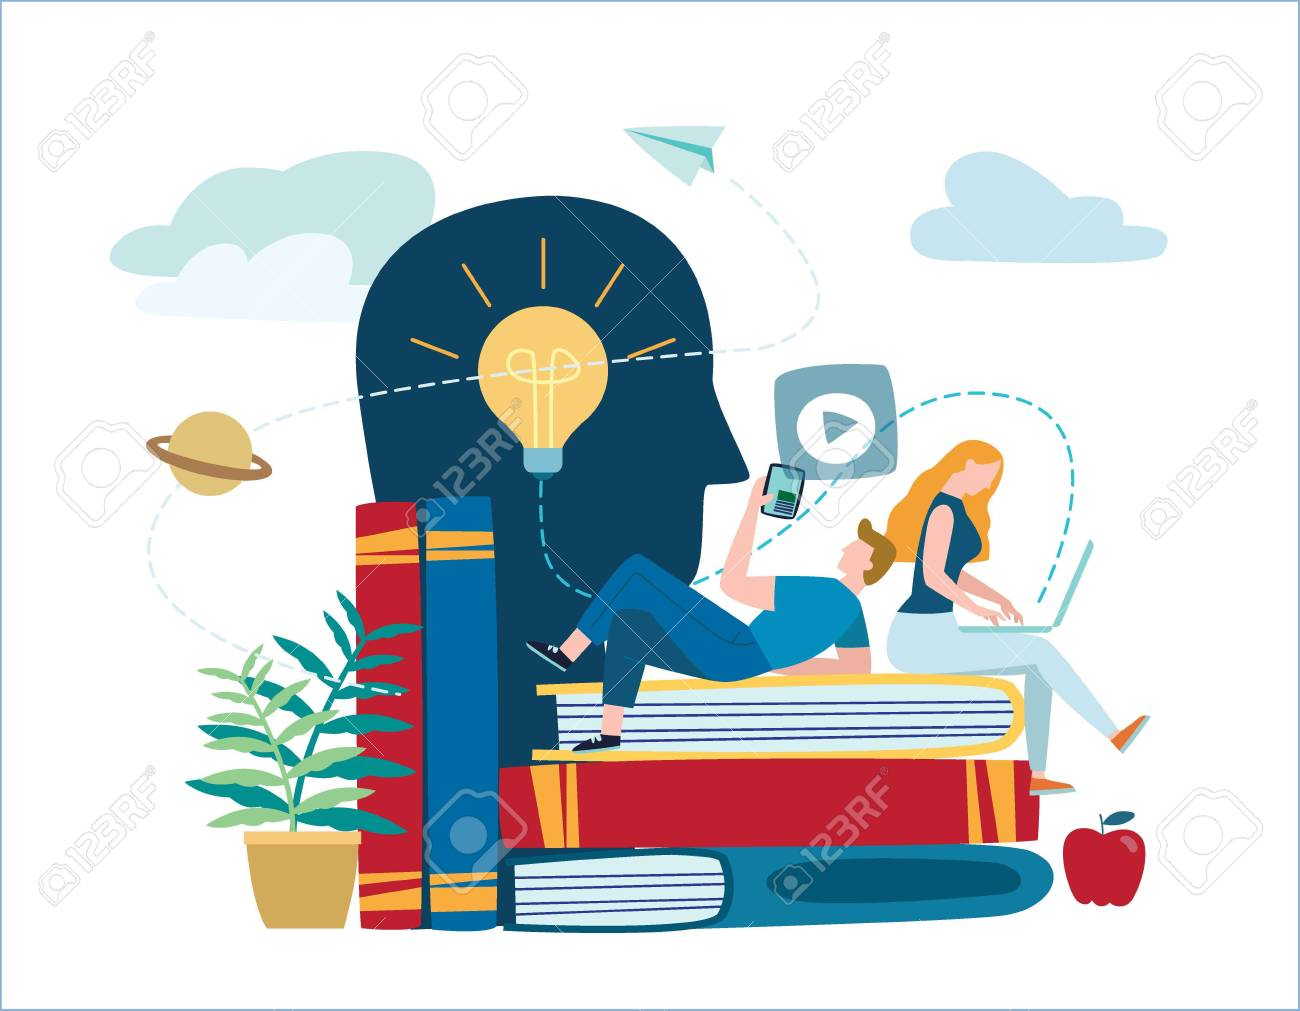 small people learn and gain knowledge. vector illustration. - 99993469